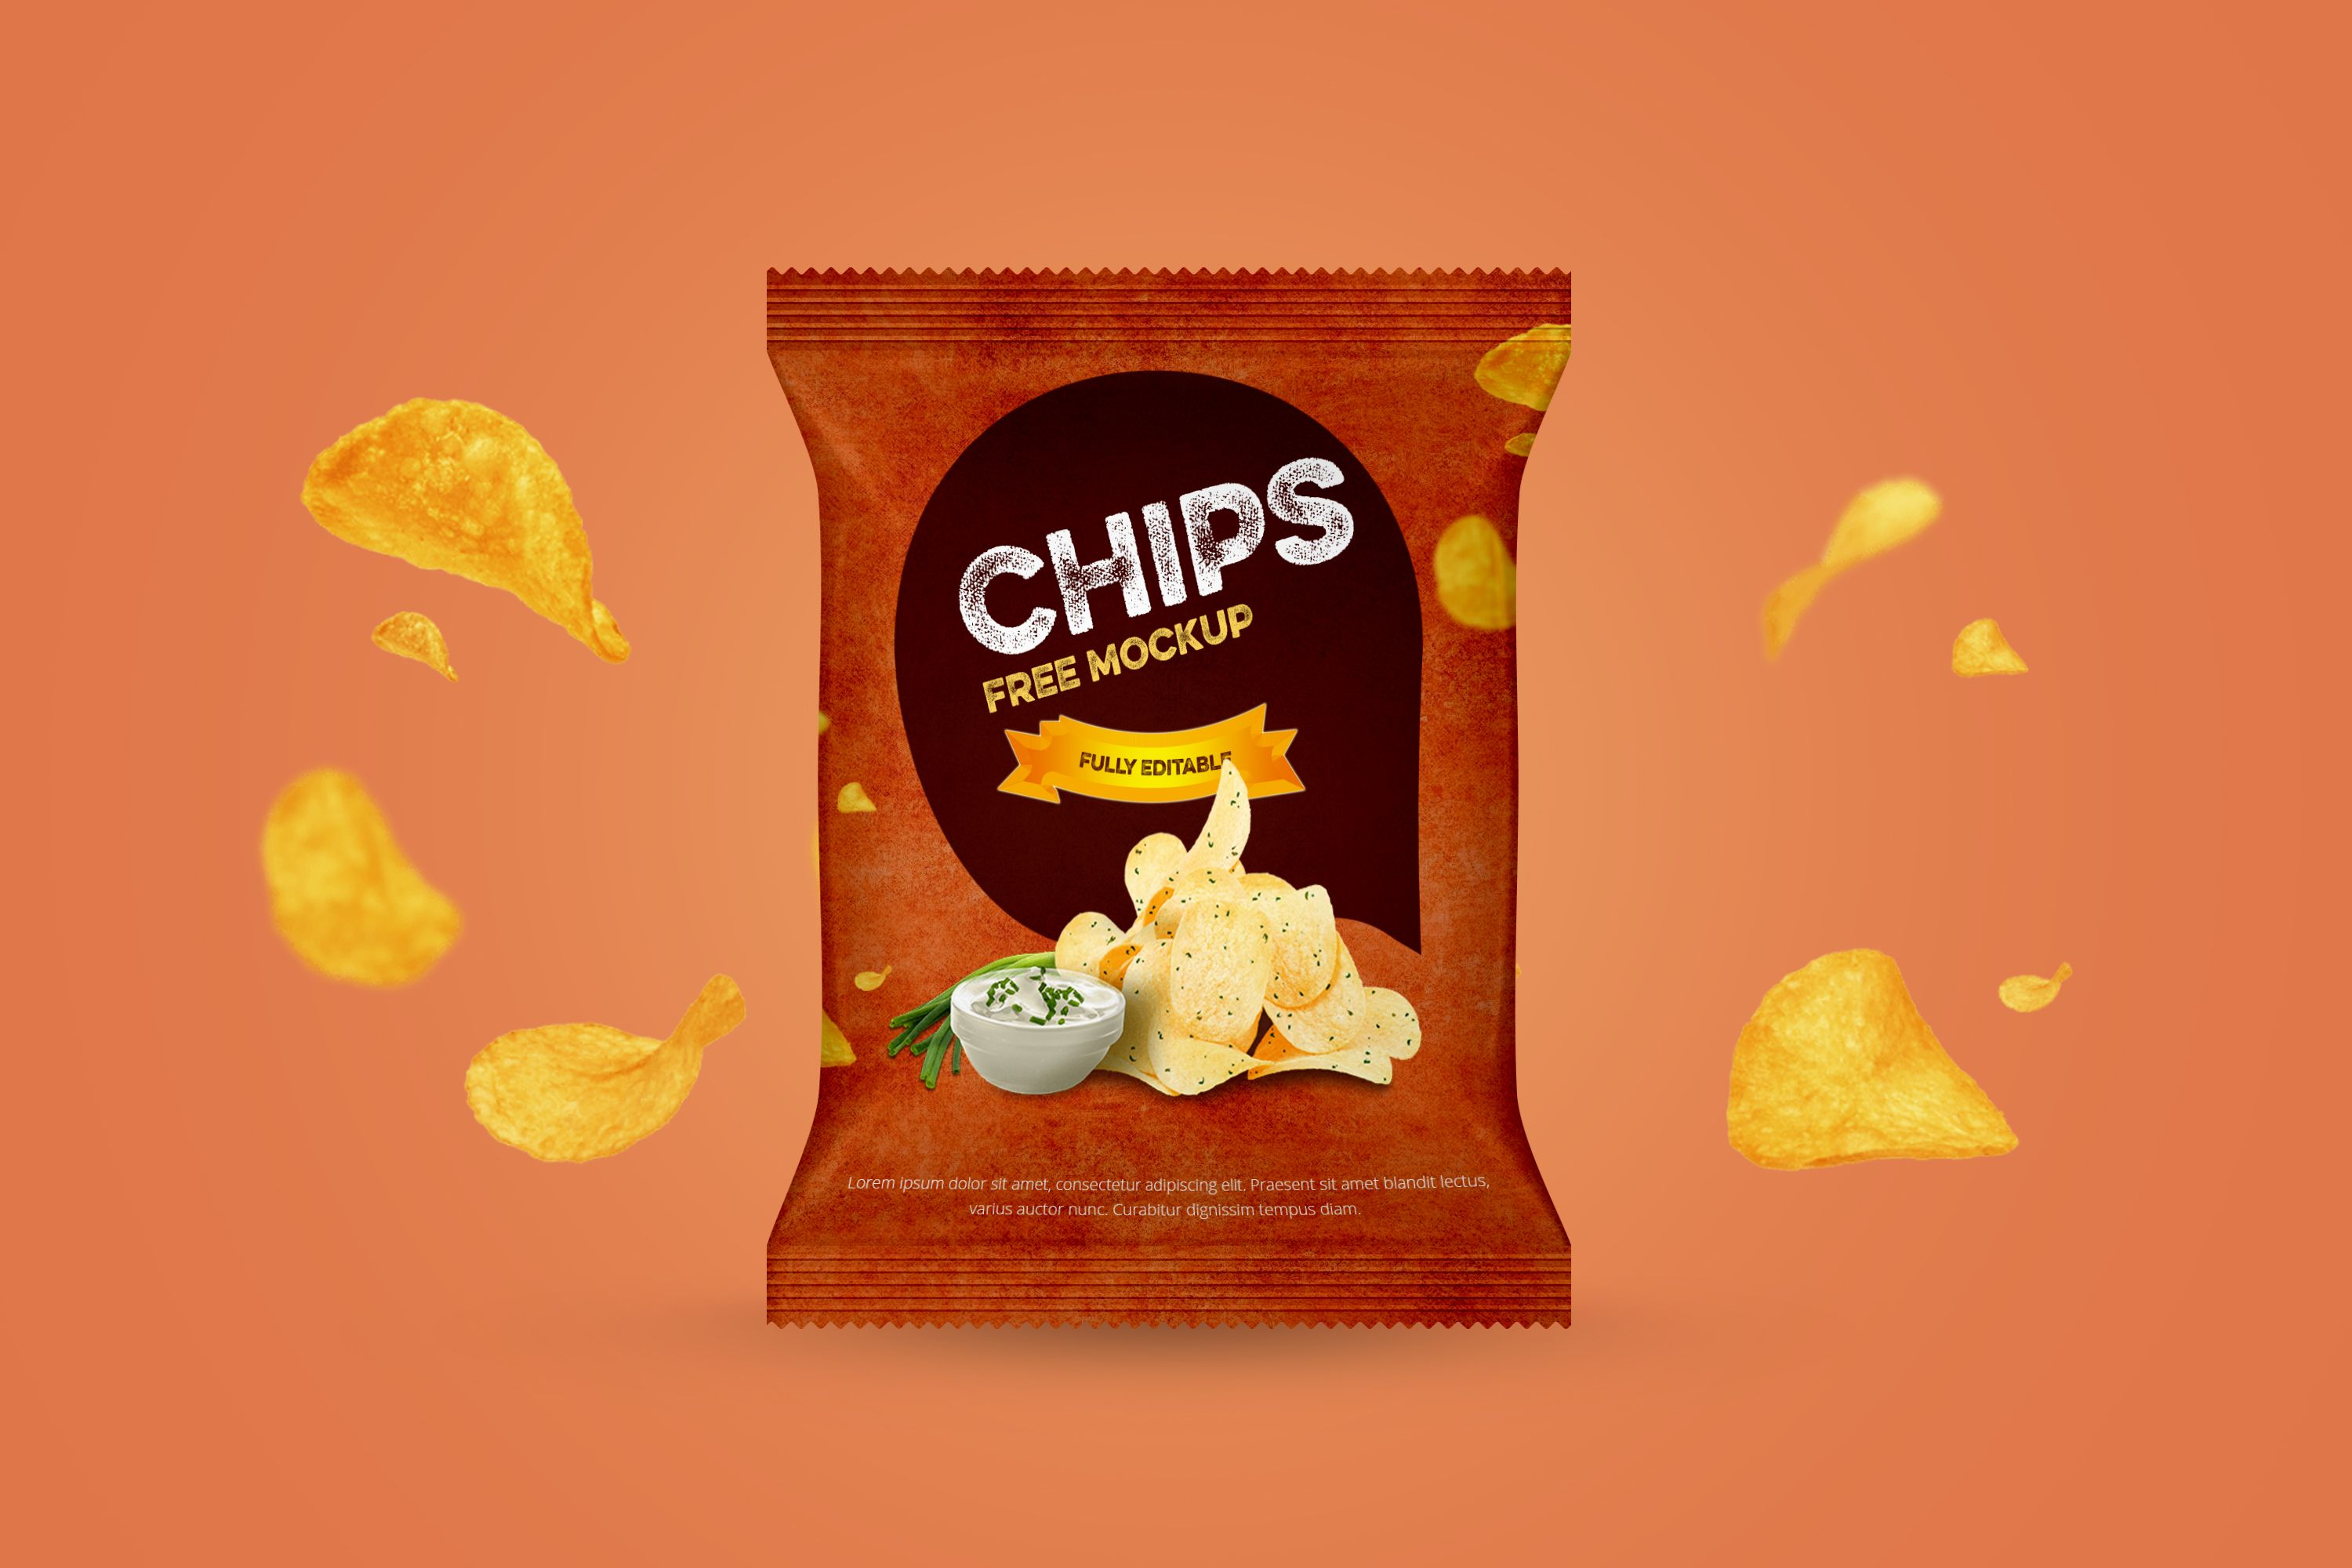 Download Chips Packet Free Mockup Psd Pixelsdesign In 2021 Free Mockup Mockup Free Psd Mockup Psd